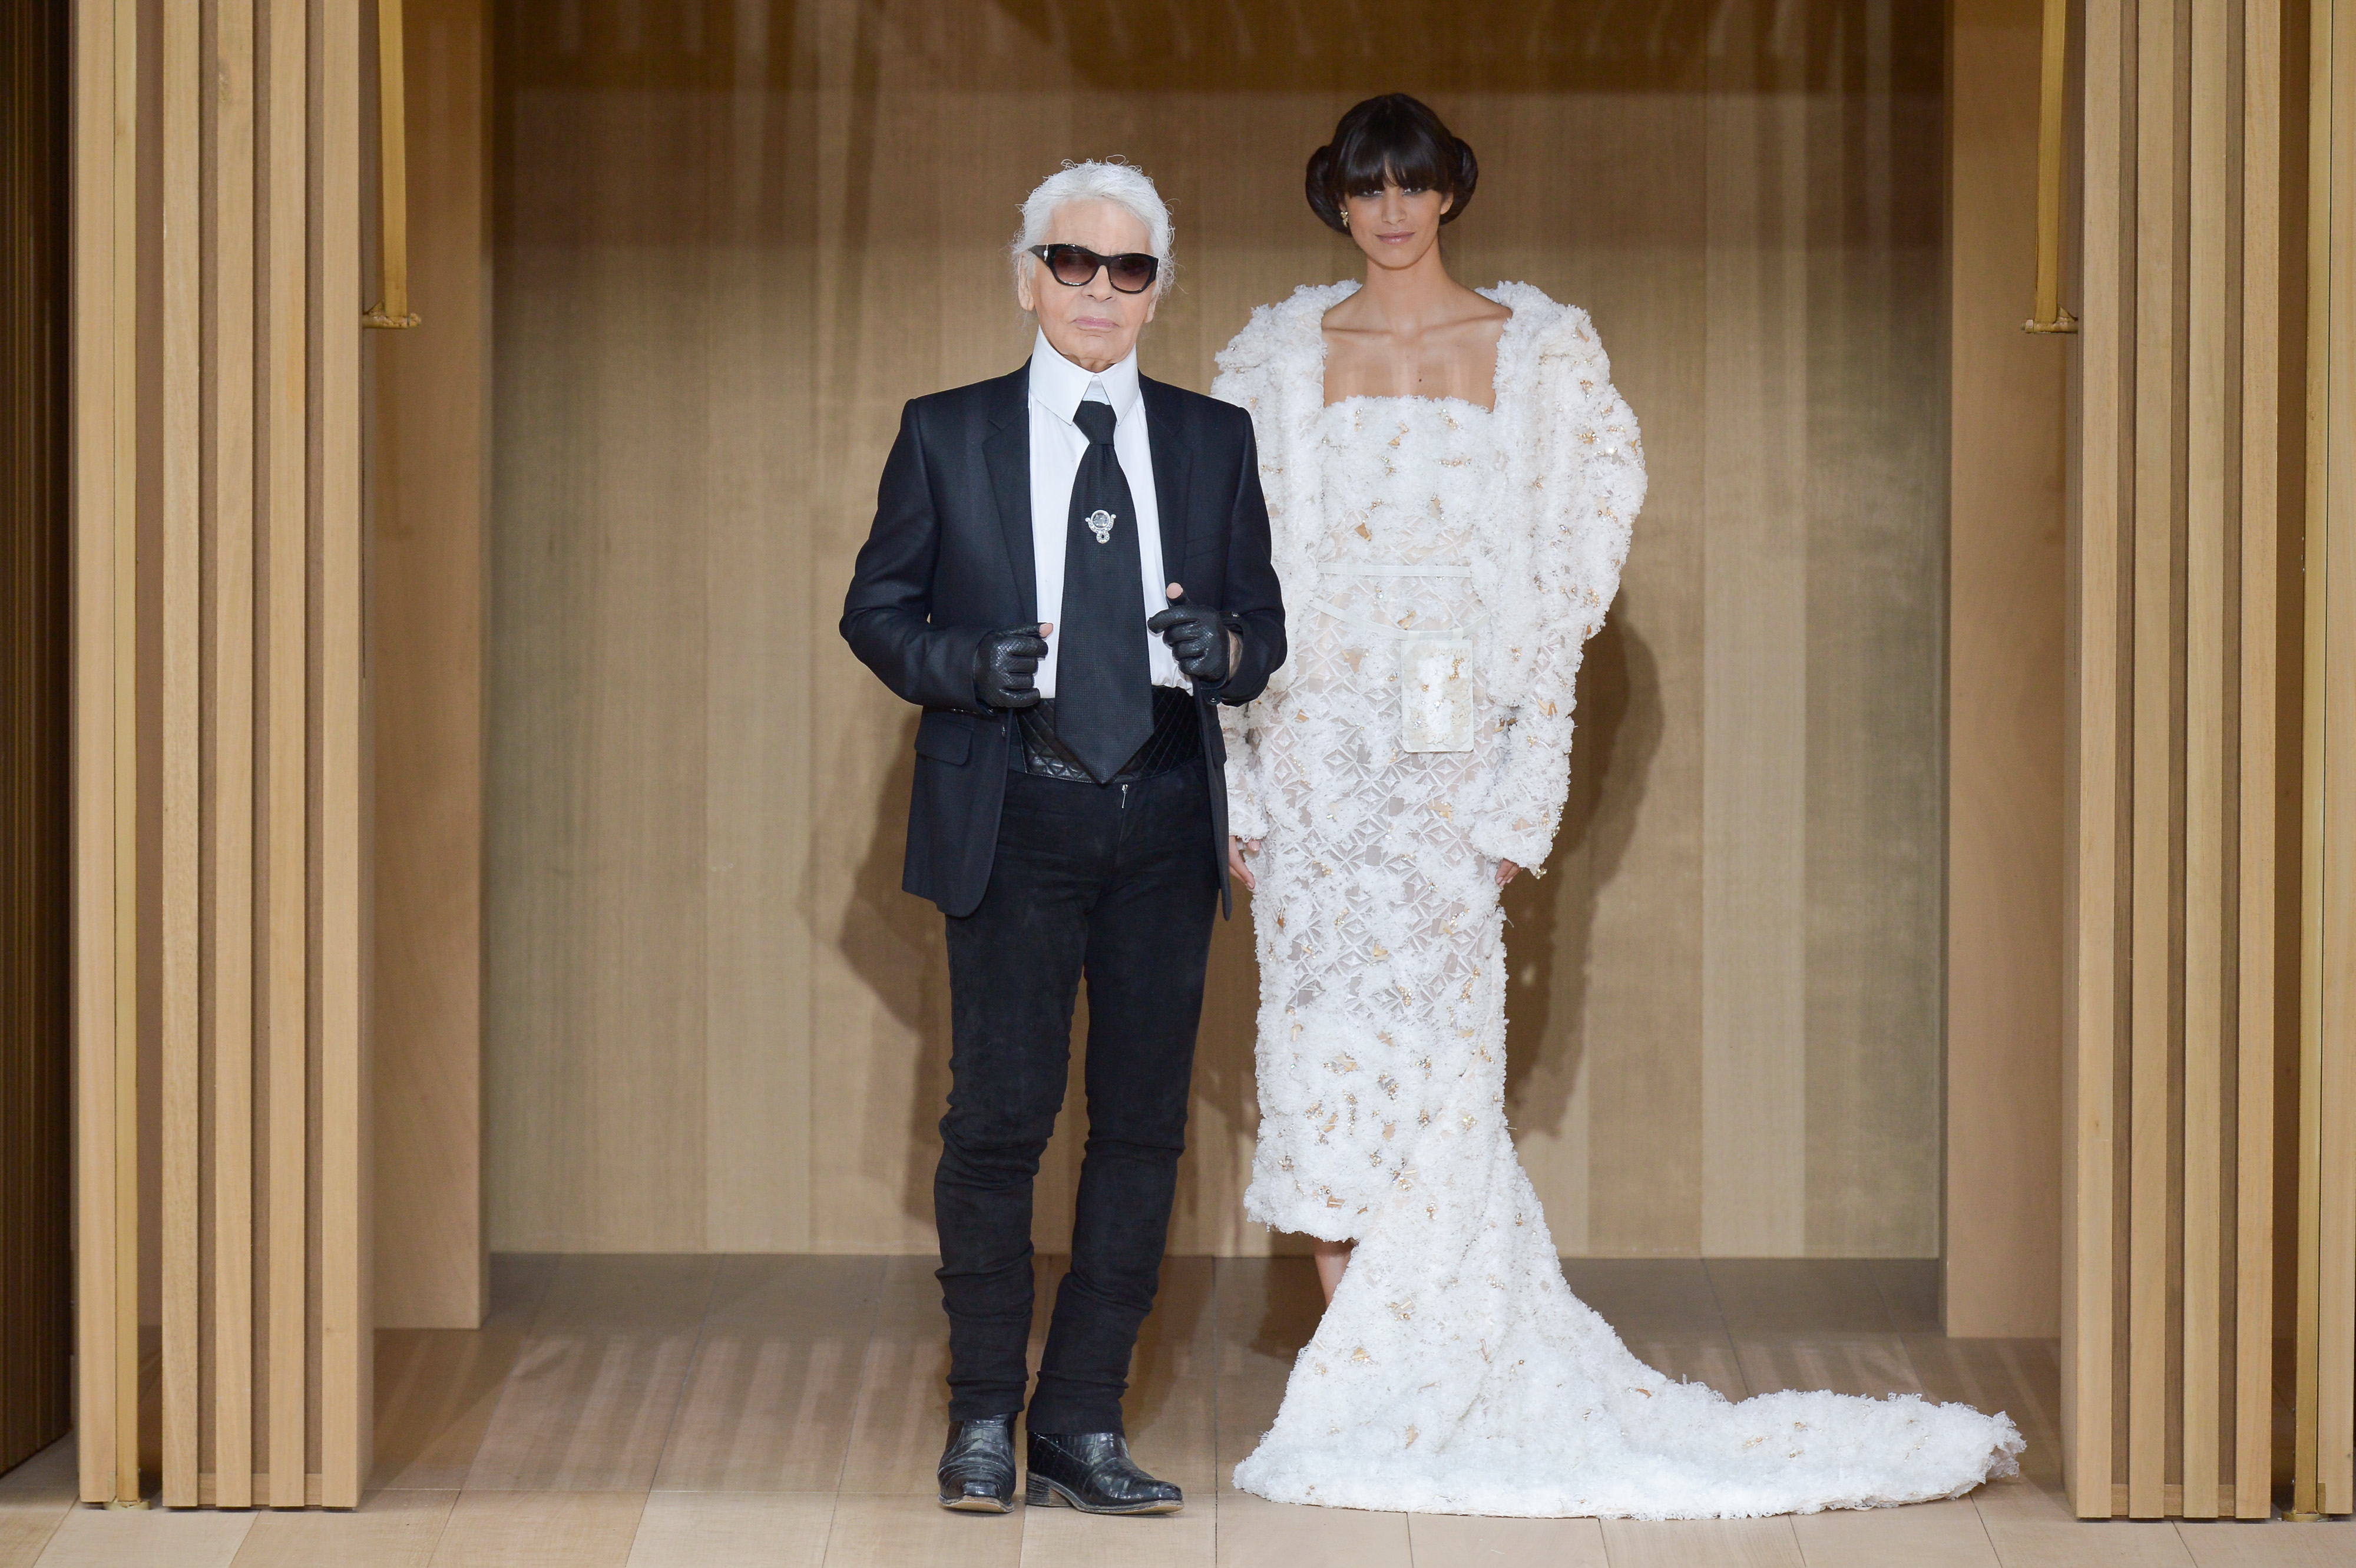 Karl Lagerfeld is arguably one of the world's most prolific designers, lending his expert hand to almost 20 collections a year for Chanel, Fendi and his own eponymous label. Known for his alchemic ability to tirelessly produce cult-status hits, he is now turning his attention - and chic, avant-garde aesthetic - to a capsule collection of engagement rings. With a perceptible fascination for weddings  - the 'Chanel bride' accompanies Lagerfeld on his finale bow at the end of his couture shows - one wonders what took so long for this match-made-in-heaven to be realised...